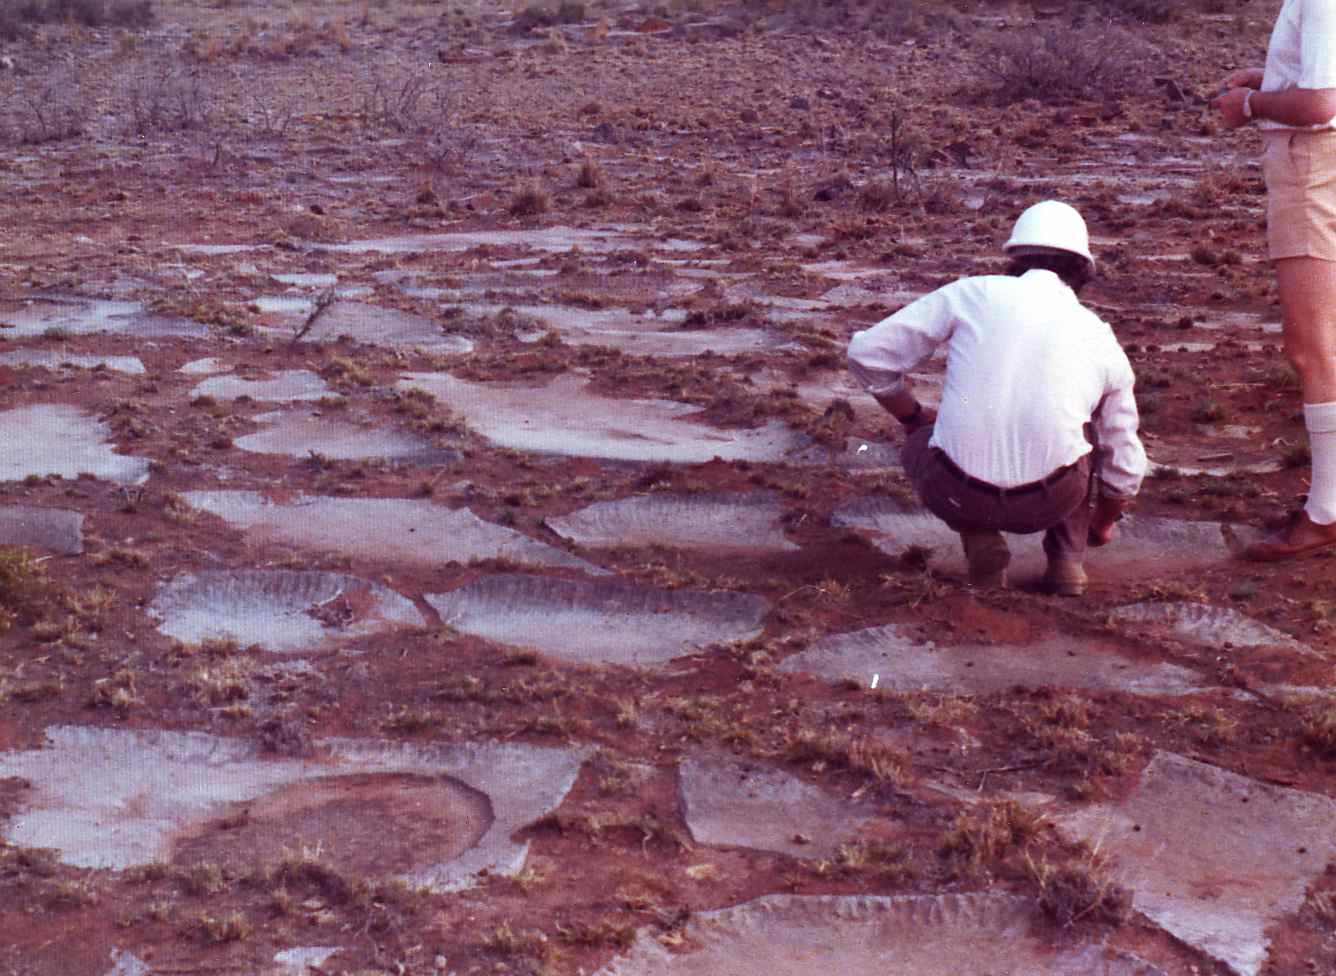 Figure 111A - Preserved mud cracks in limestone (Ulco. S. Africa).